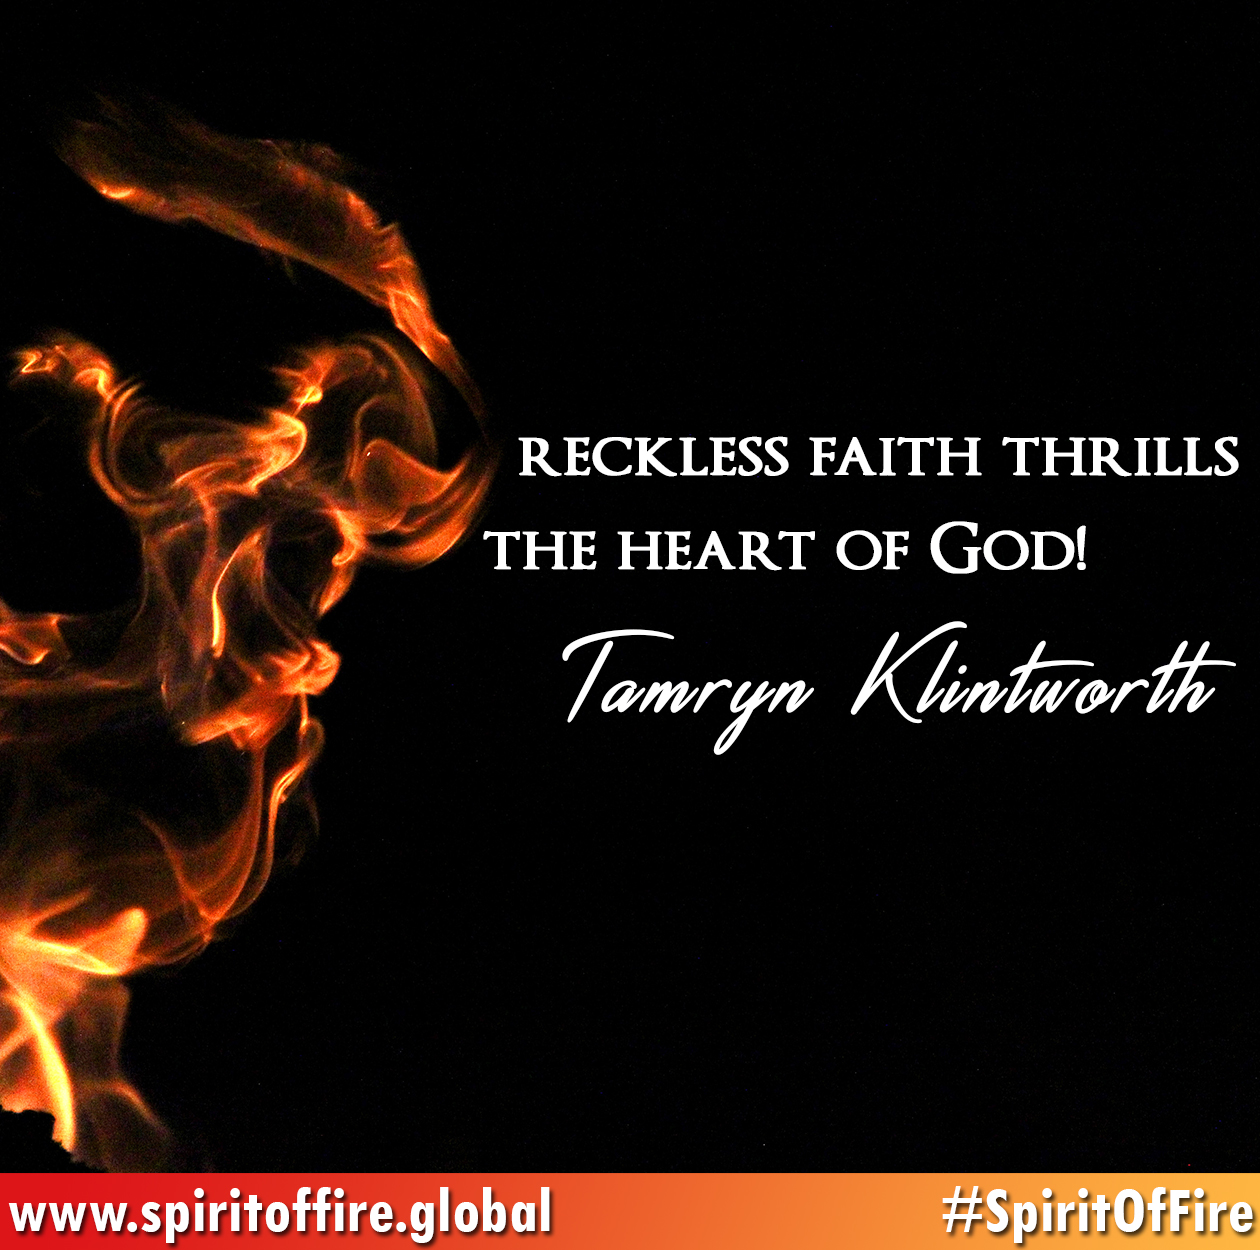 reckless-faith-thrills-the-heart-of-god